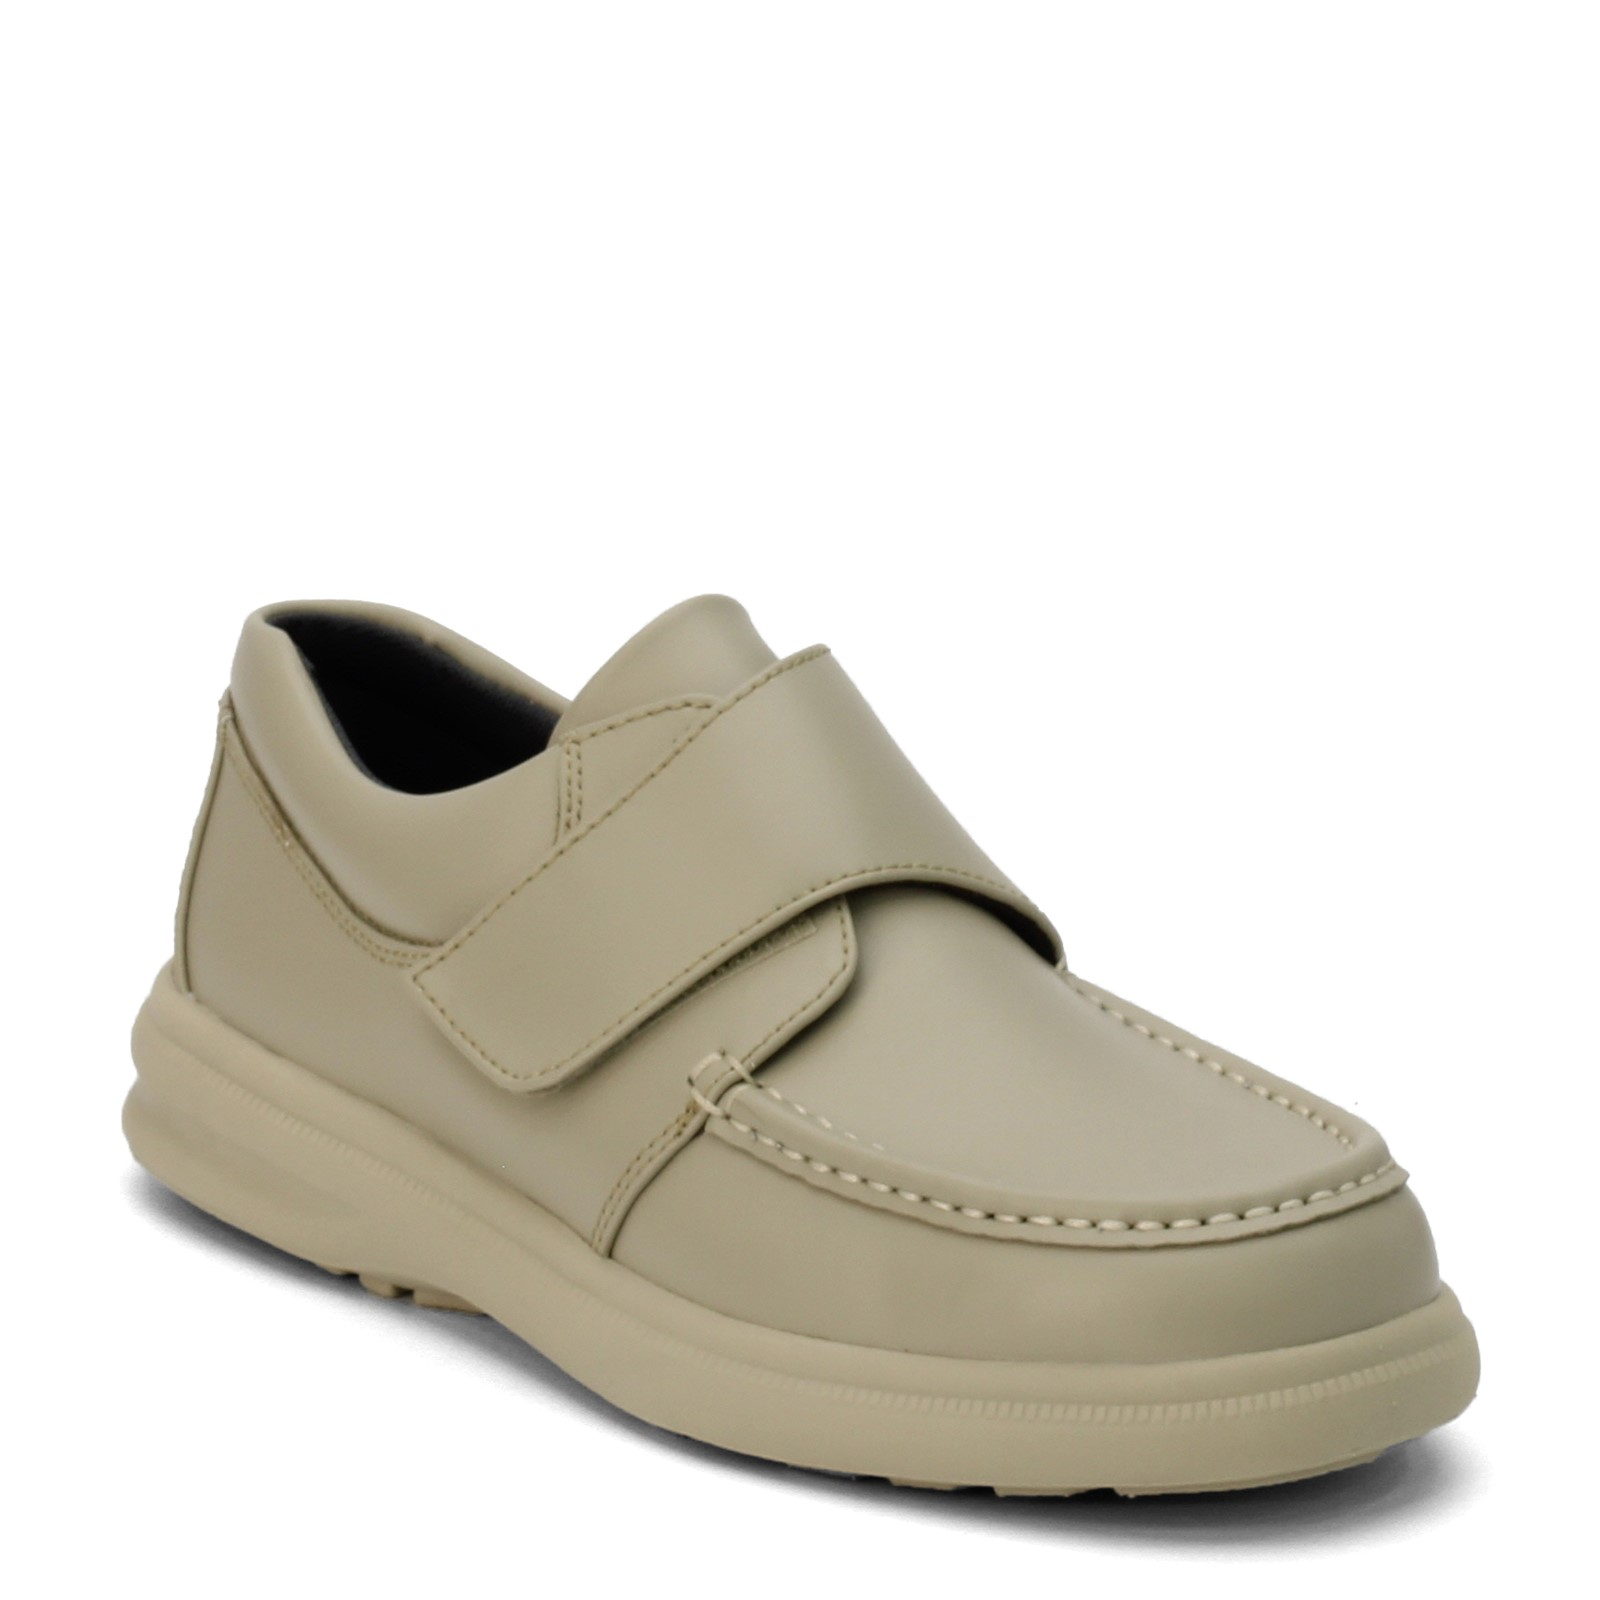 Men's Hush Puppies, Gil Slip-On